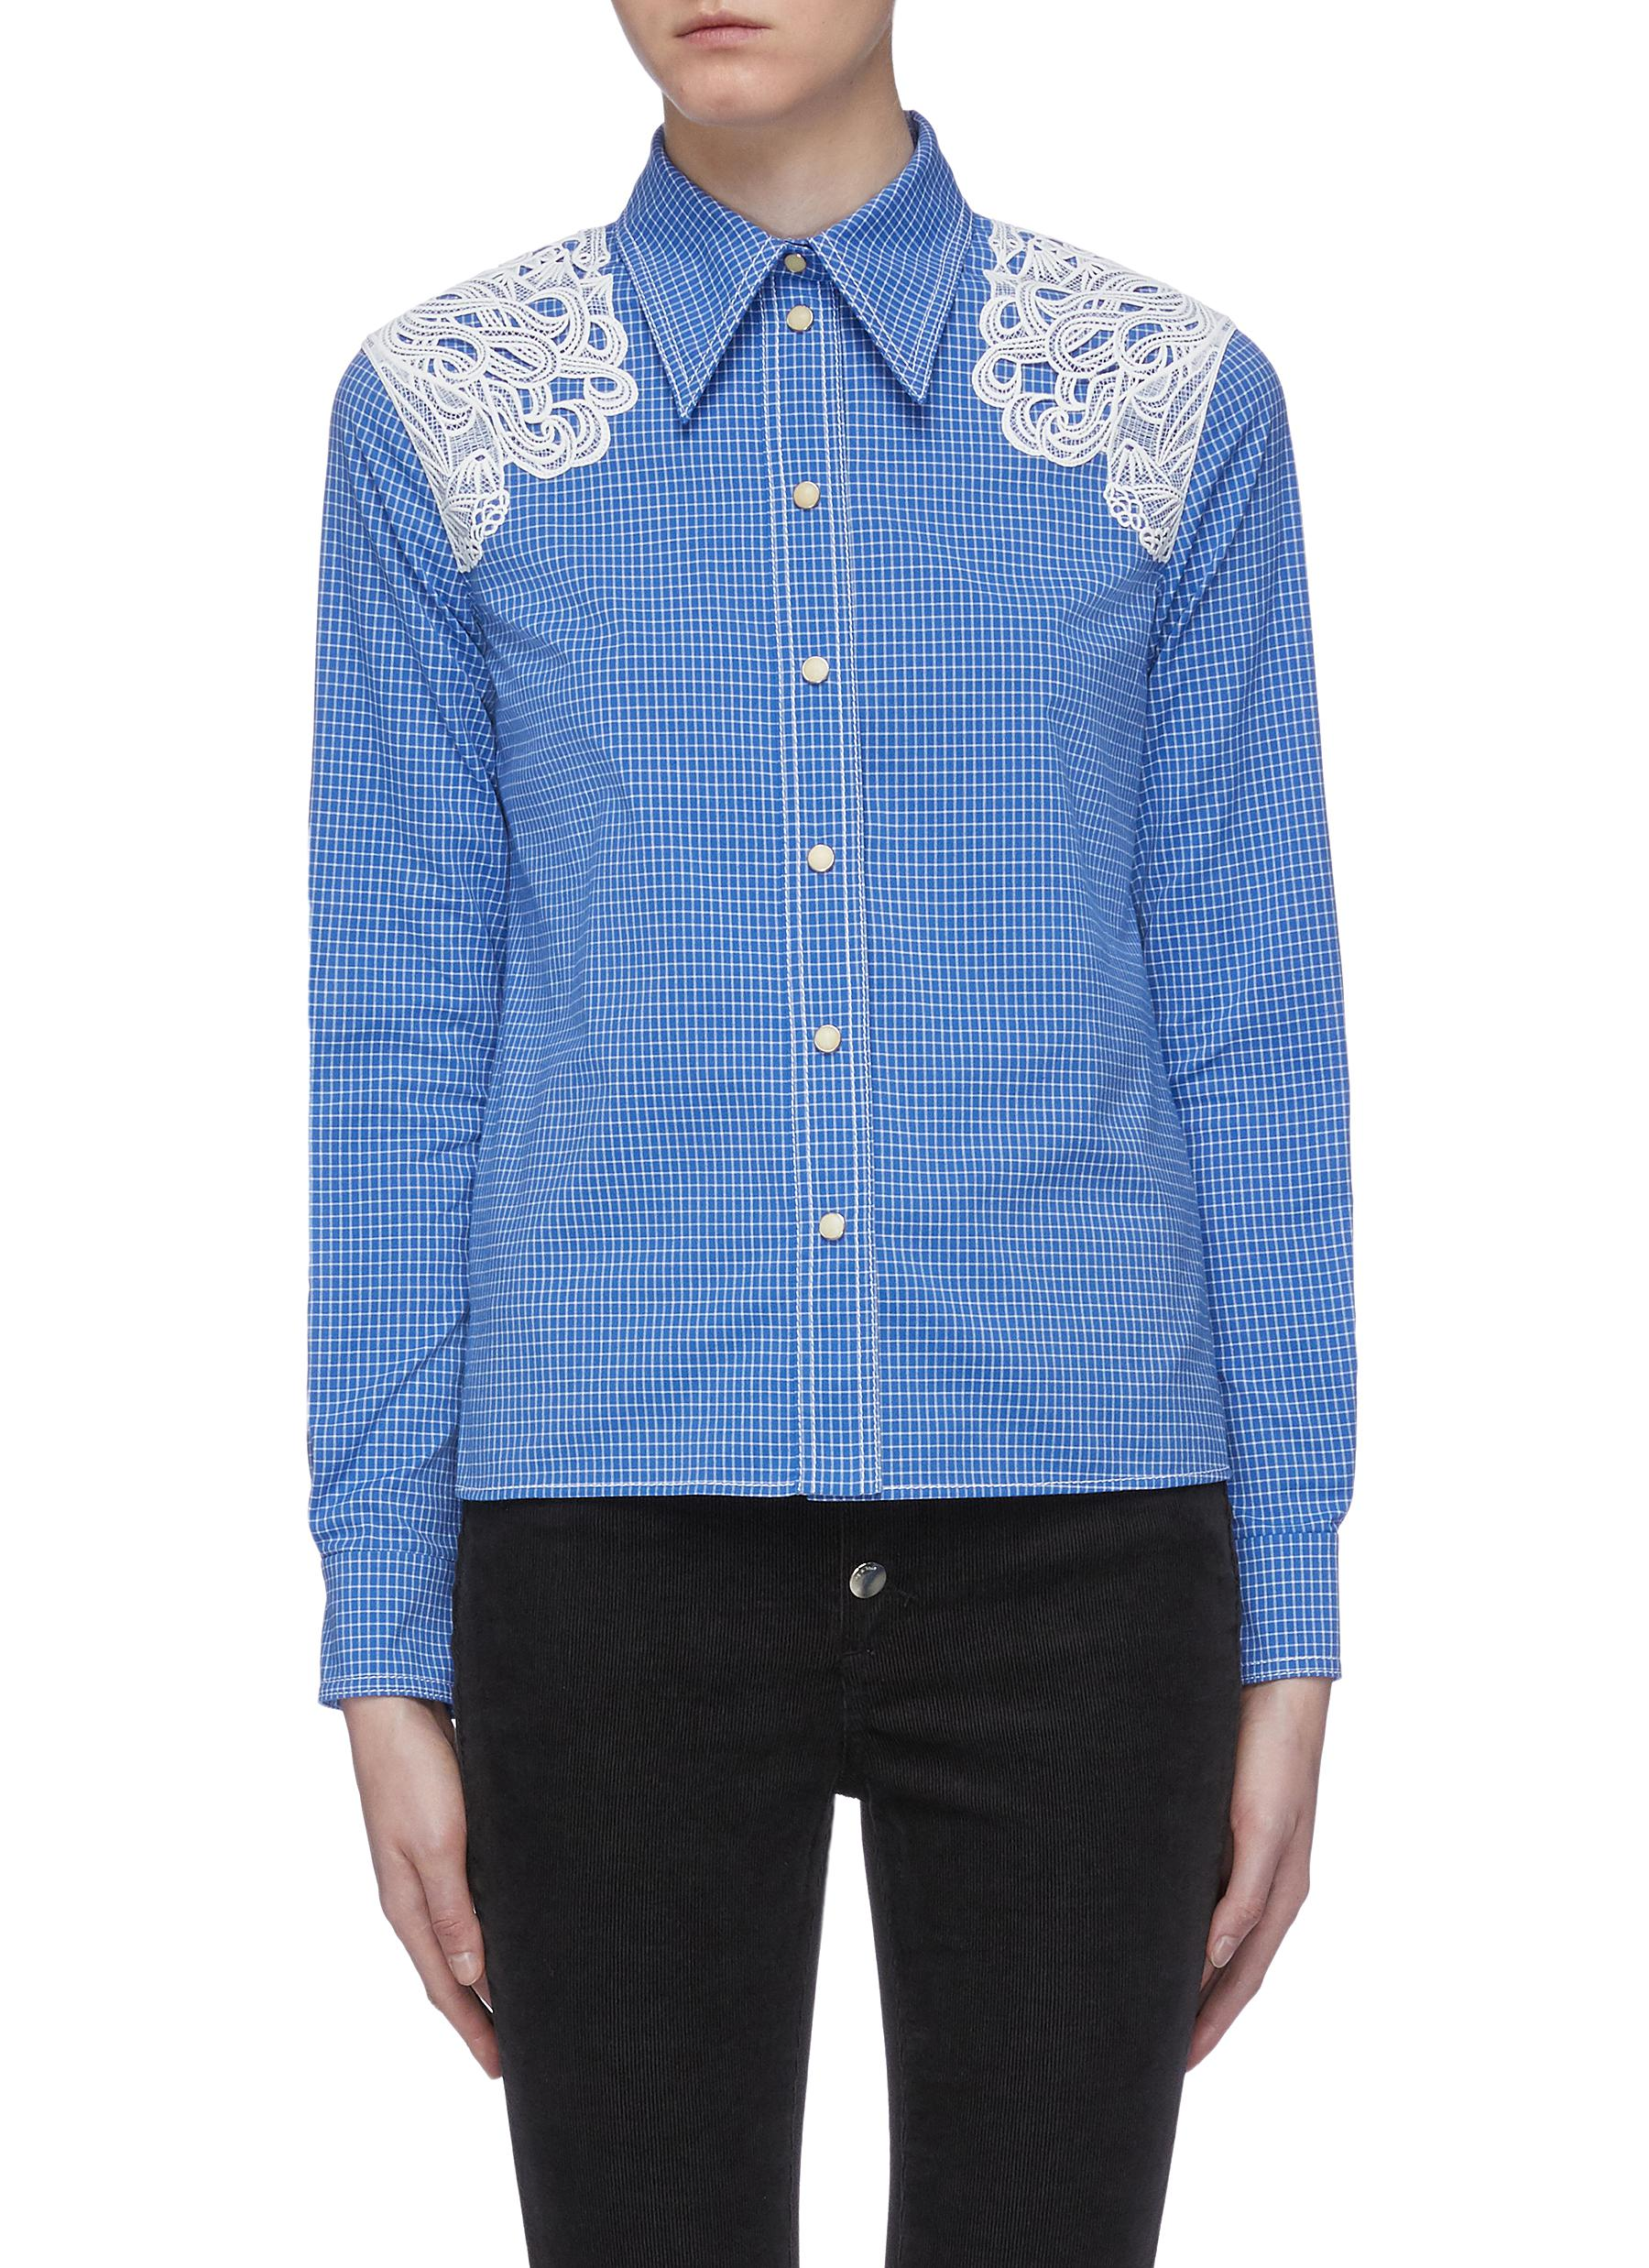 Guipure lace panel check shirt by Chloé